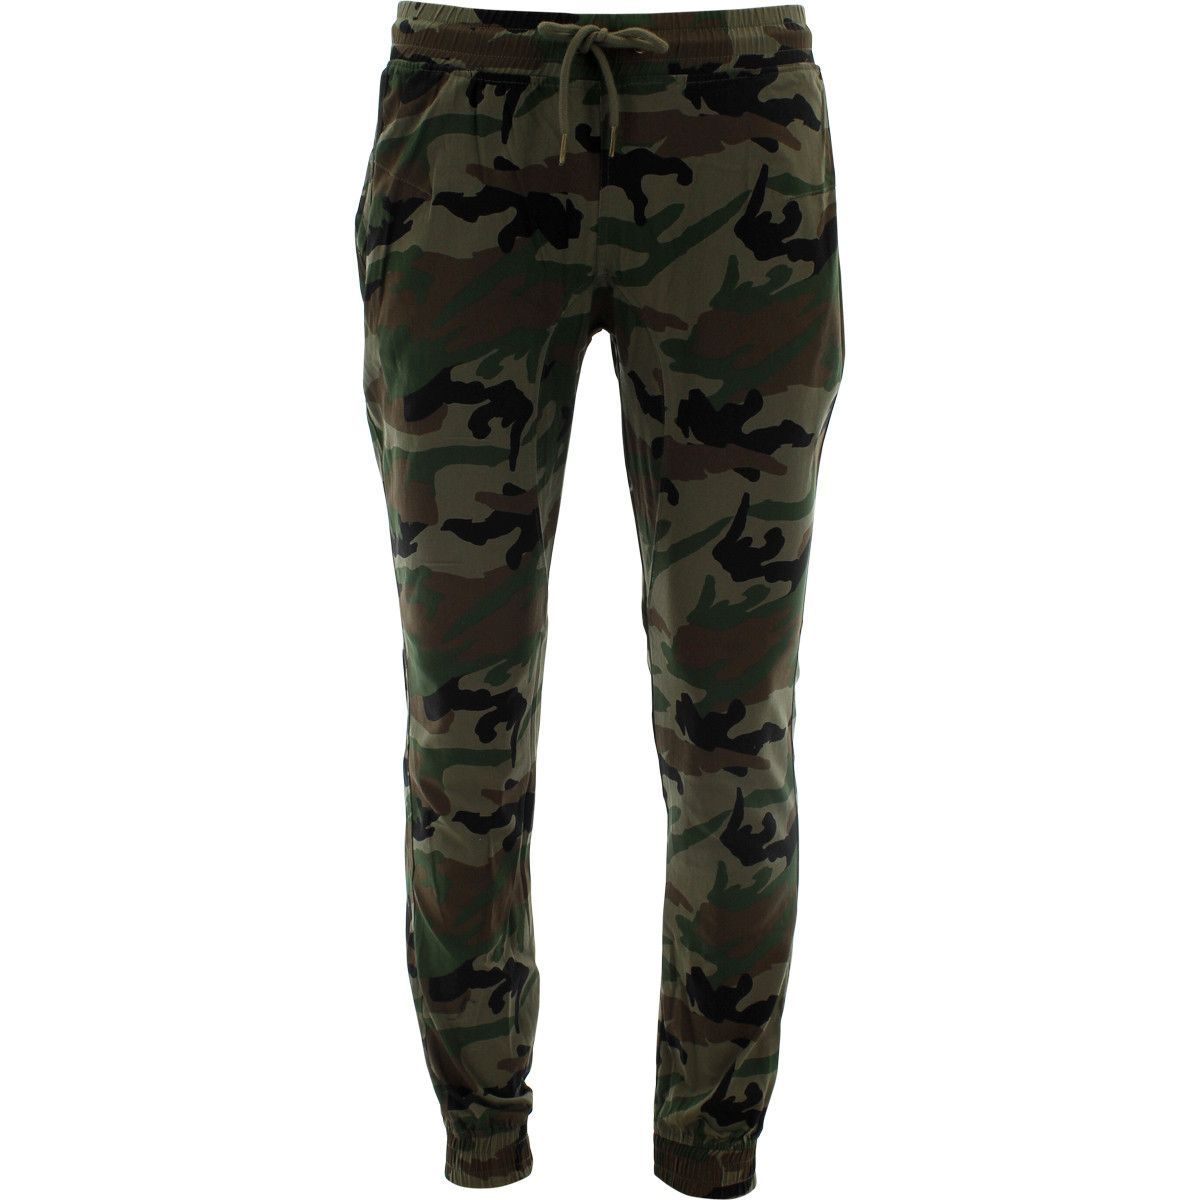 Amazing Women Military Camouflage Trouser Cargo Pants Ladies Straigh Sport Joggers Pants | EBay